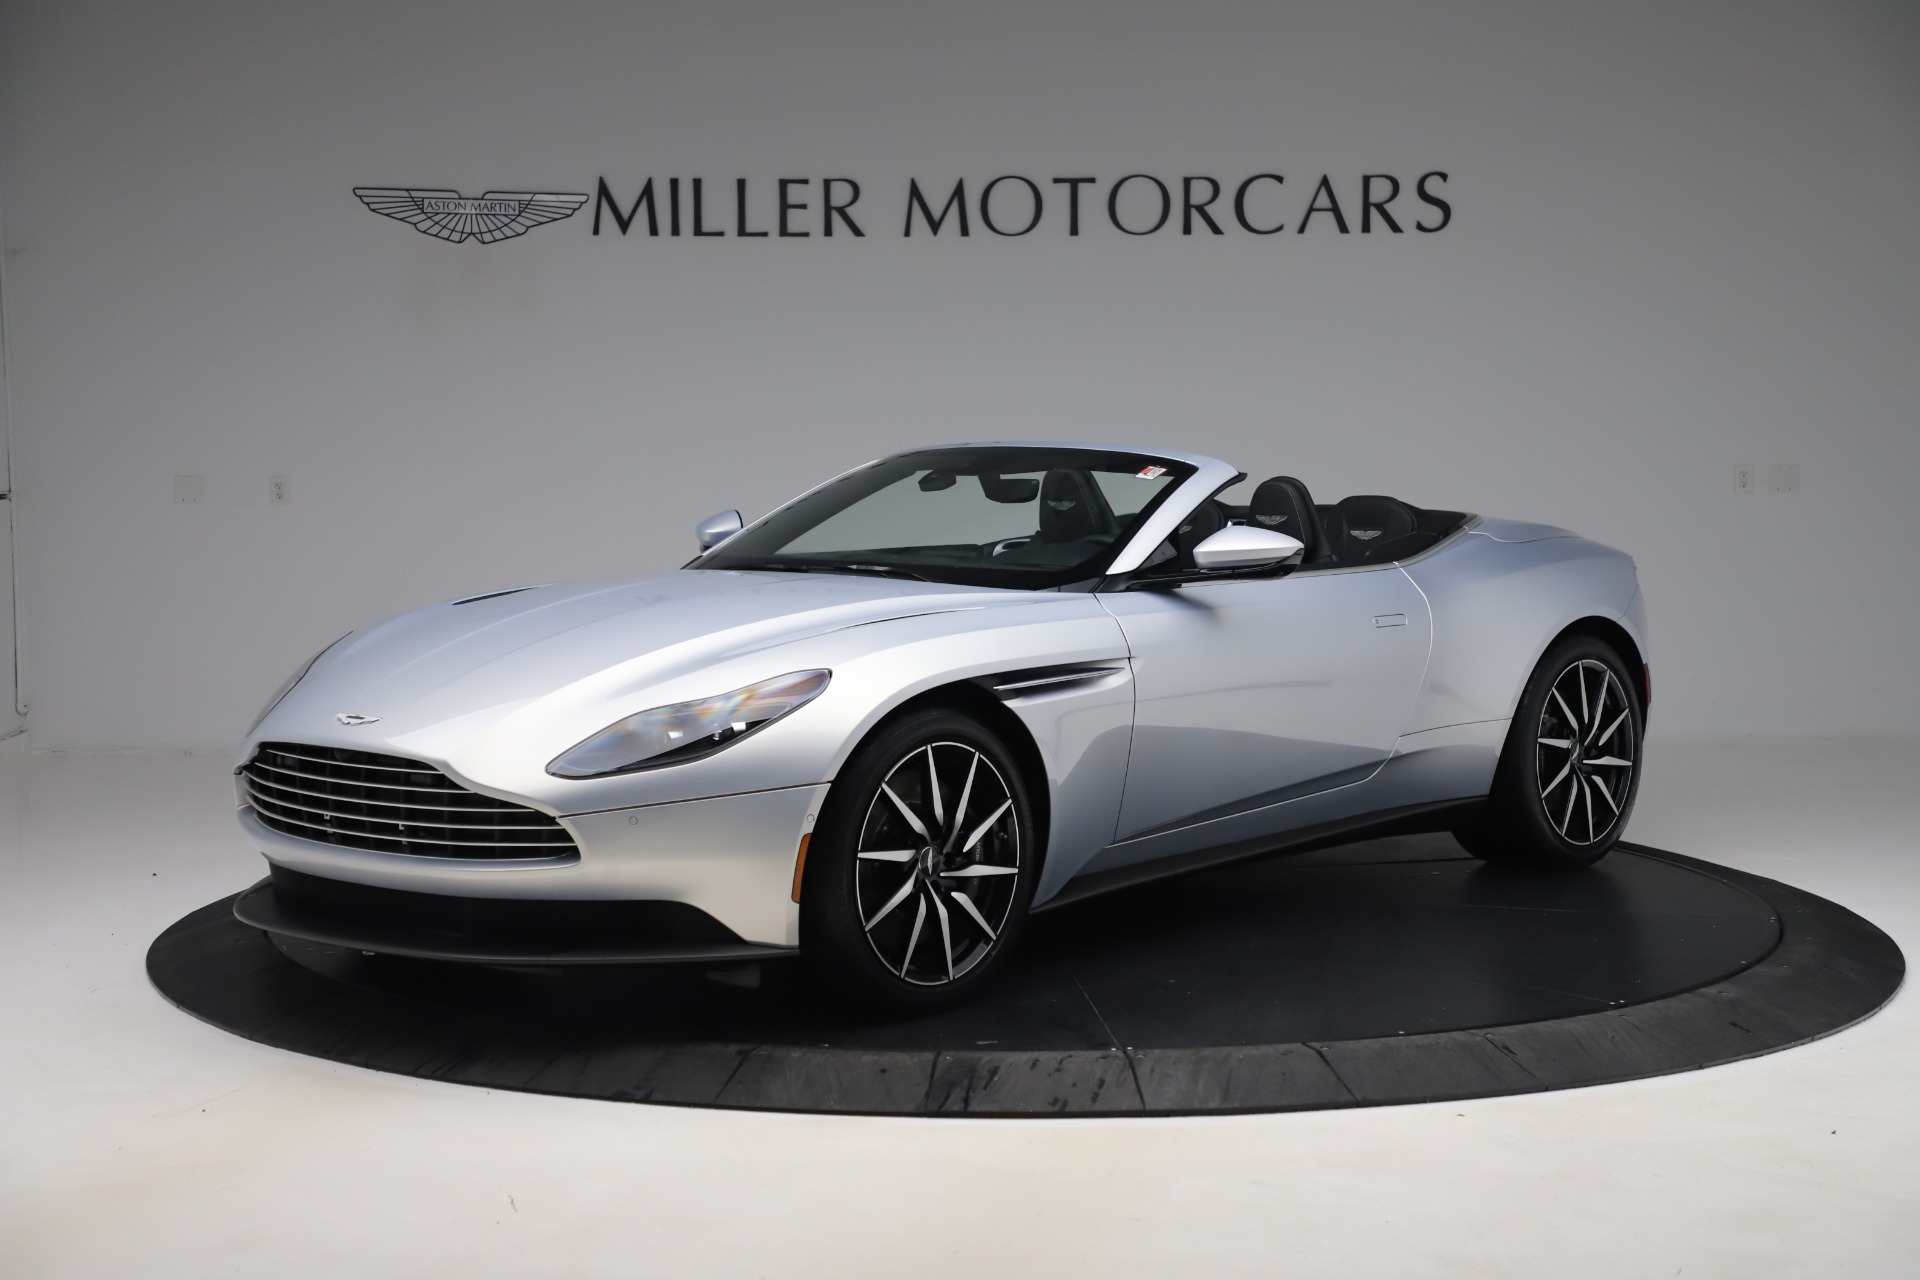 Used 2020 Aston Martin DB11 Volante Convertible for sale $240,411 at Bentley Greenwich in Greenwich CT 06830 1